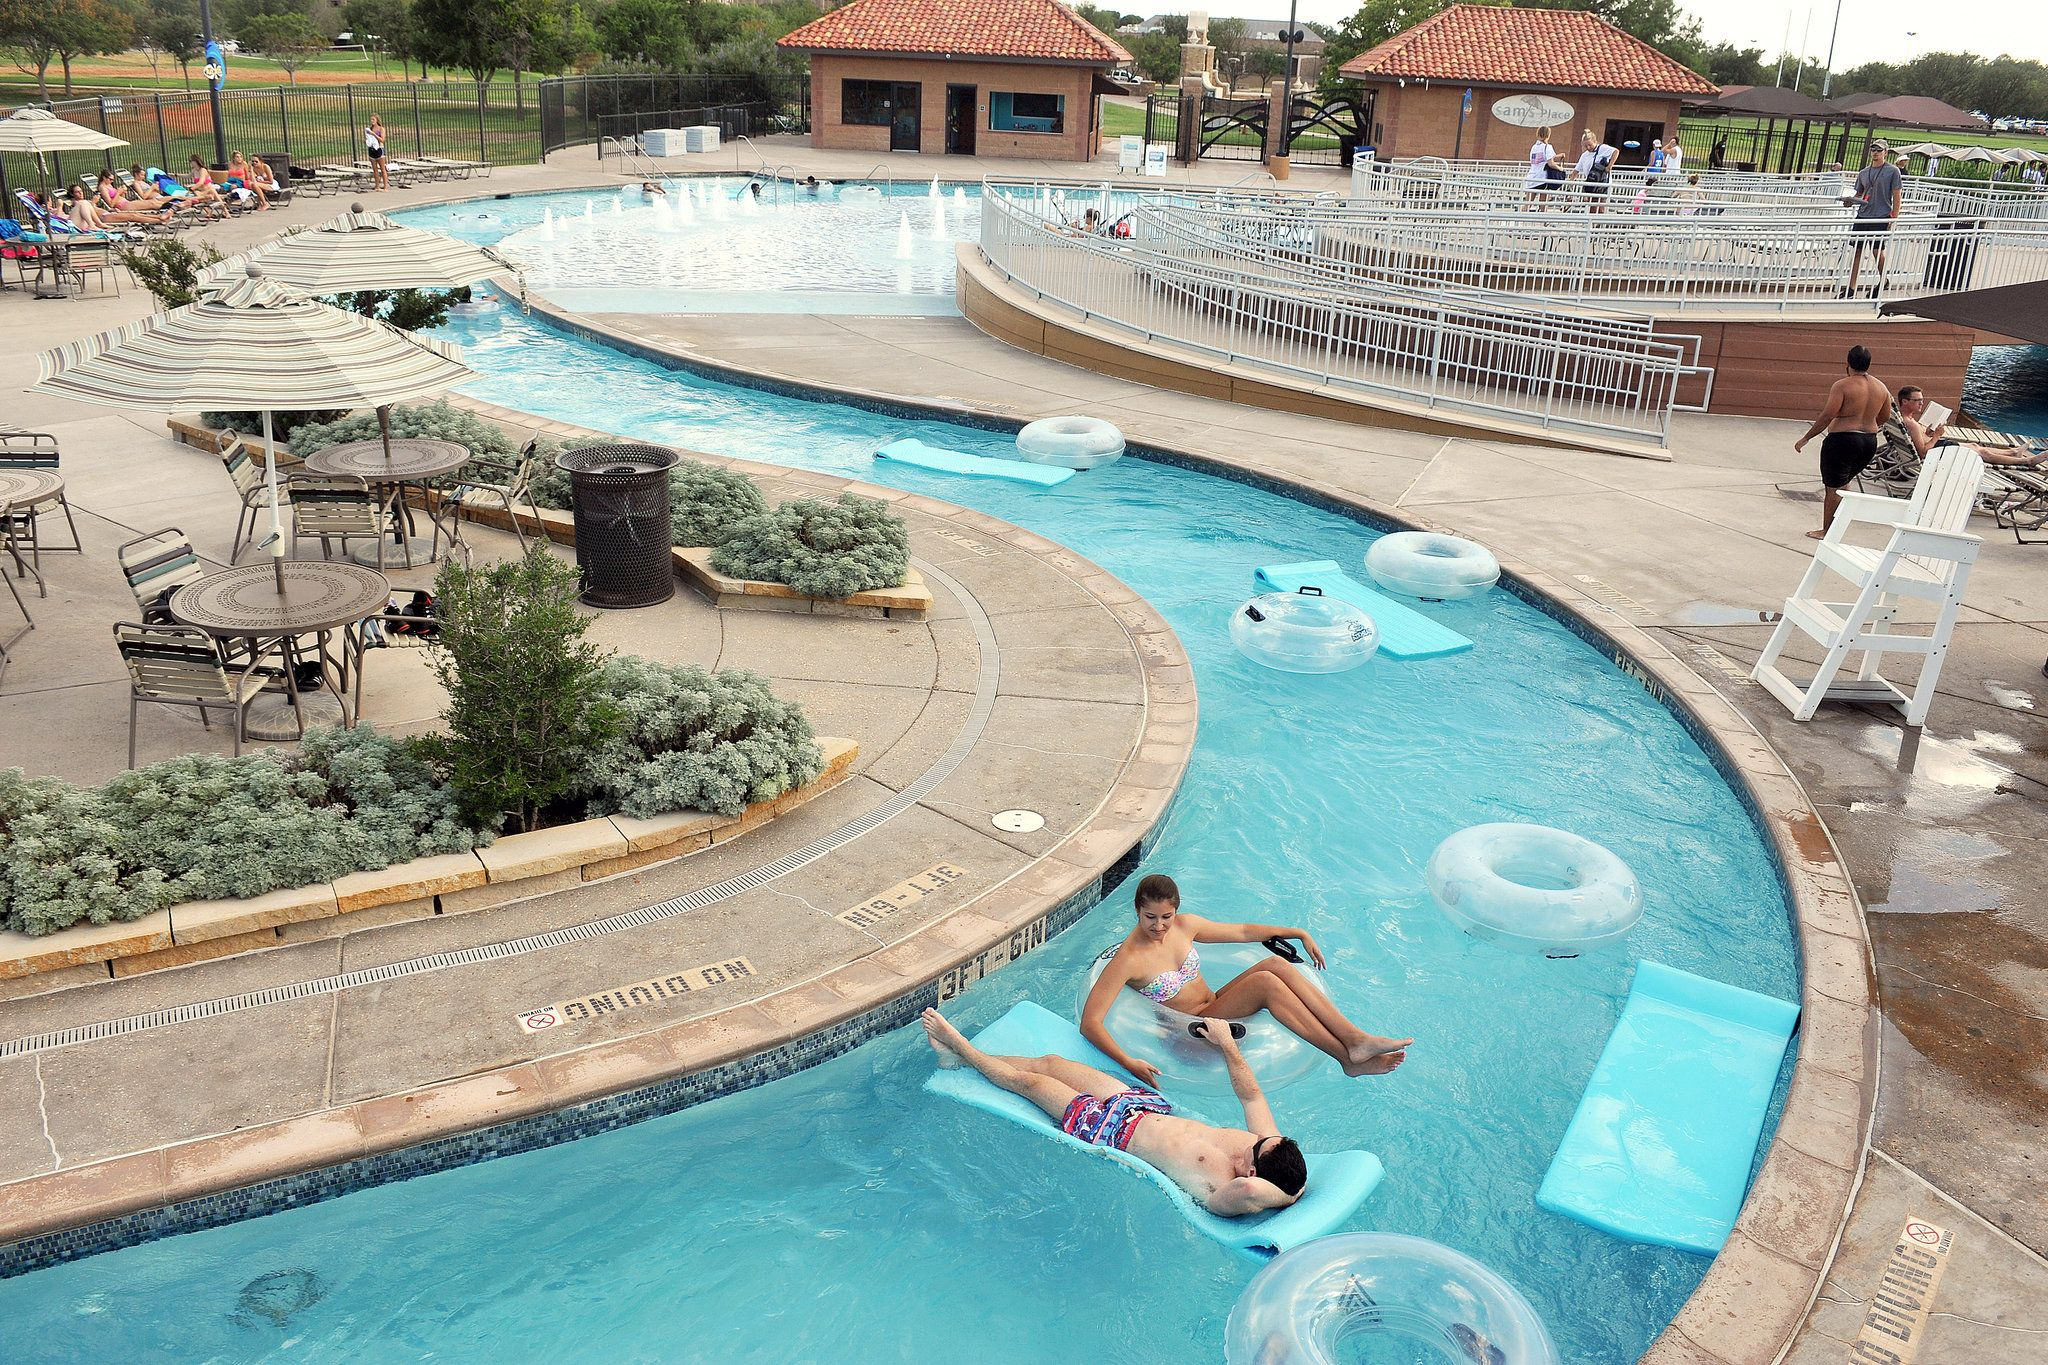 This List Of The Best College Pools Shows Top 50 Luxurious Aquatic Recreational Facilities From Around America Both Compeive And Leisure